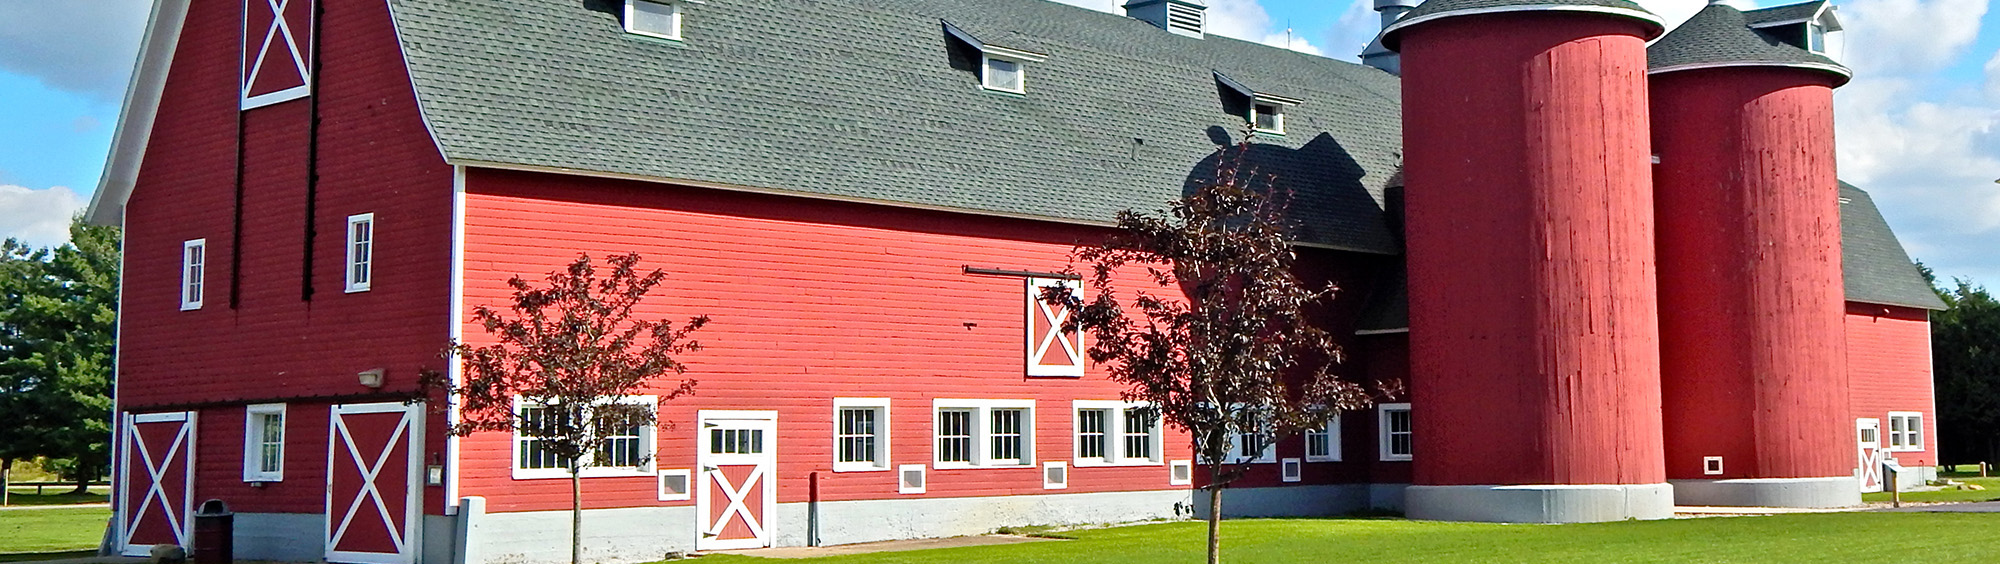 sale-barn-category-banner2.jpg